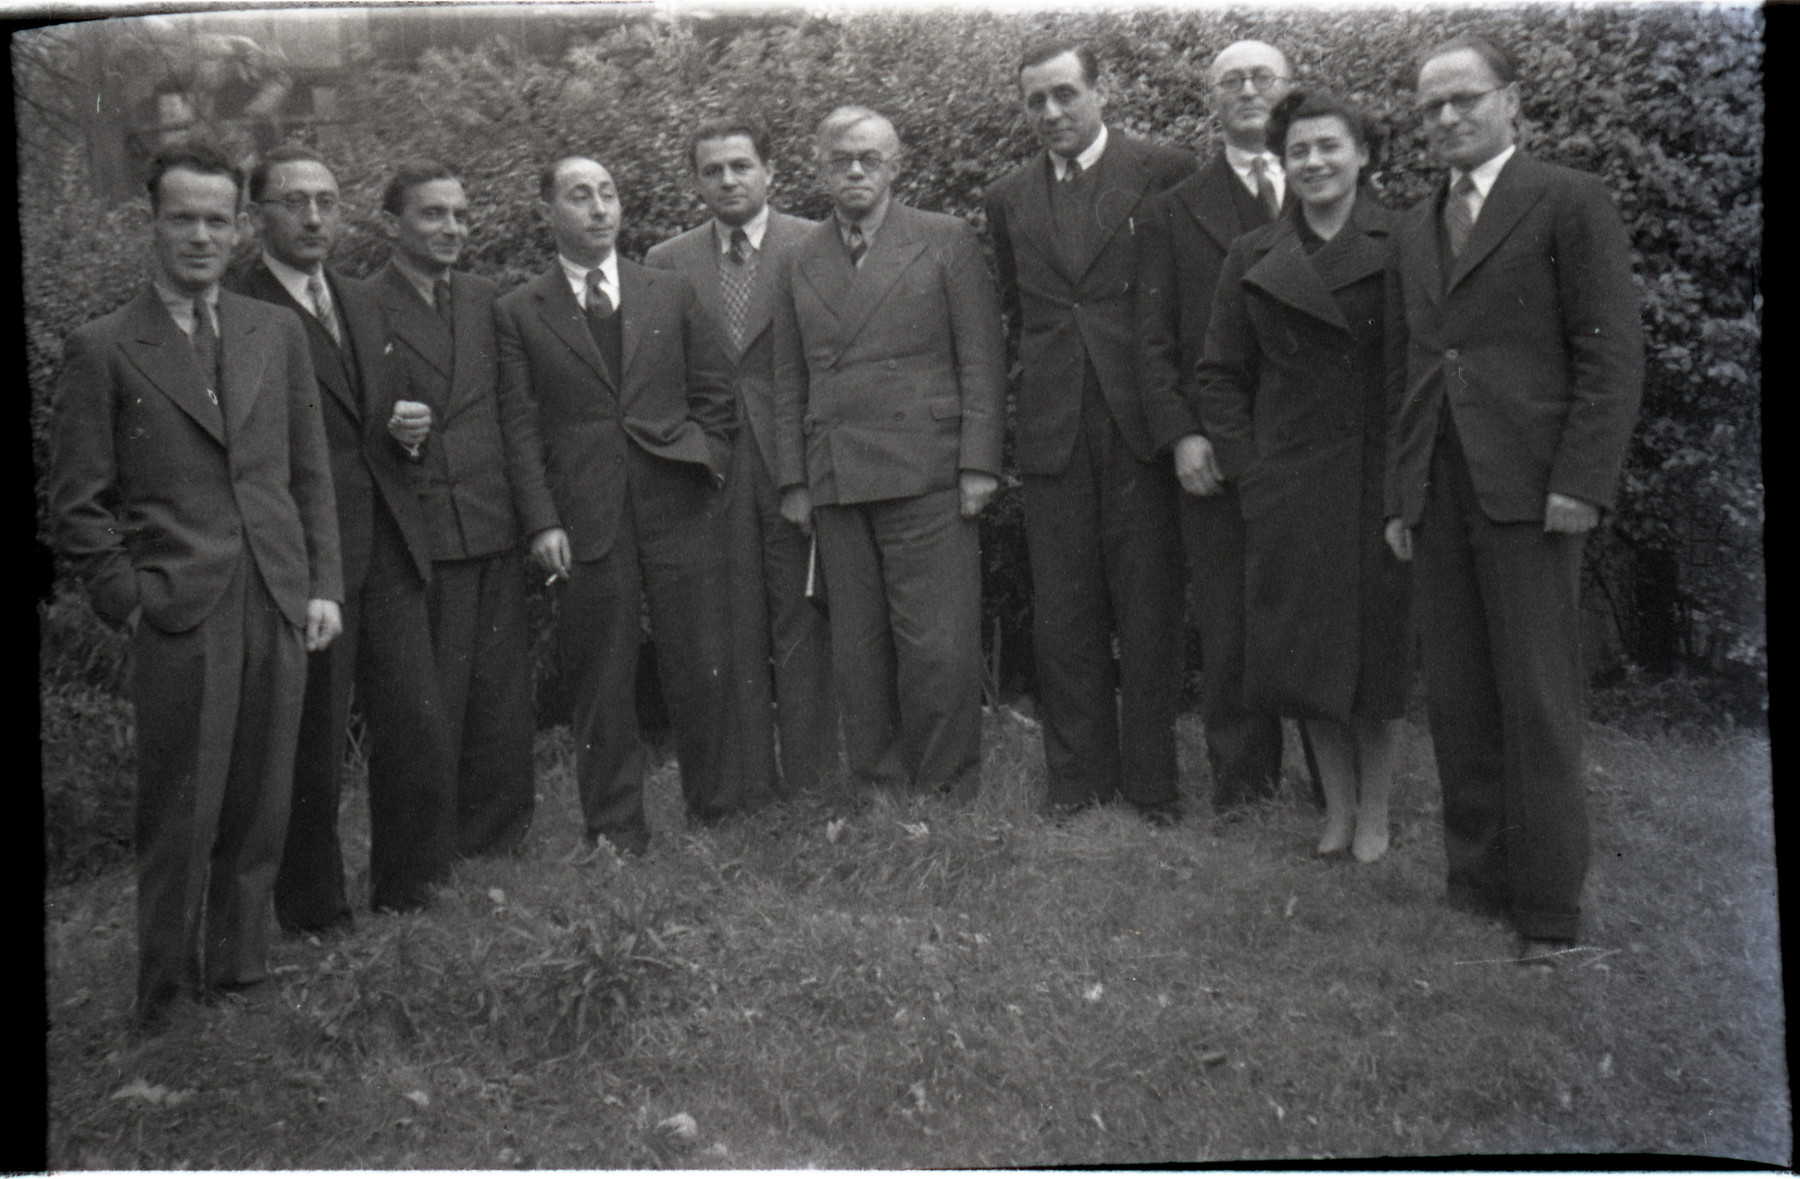 Vladimir Jabotinsky (center) meets with other Revisionist Zionists in London.